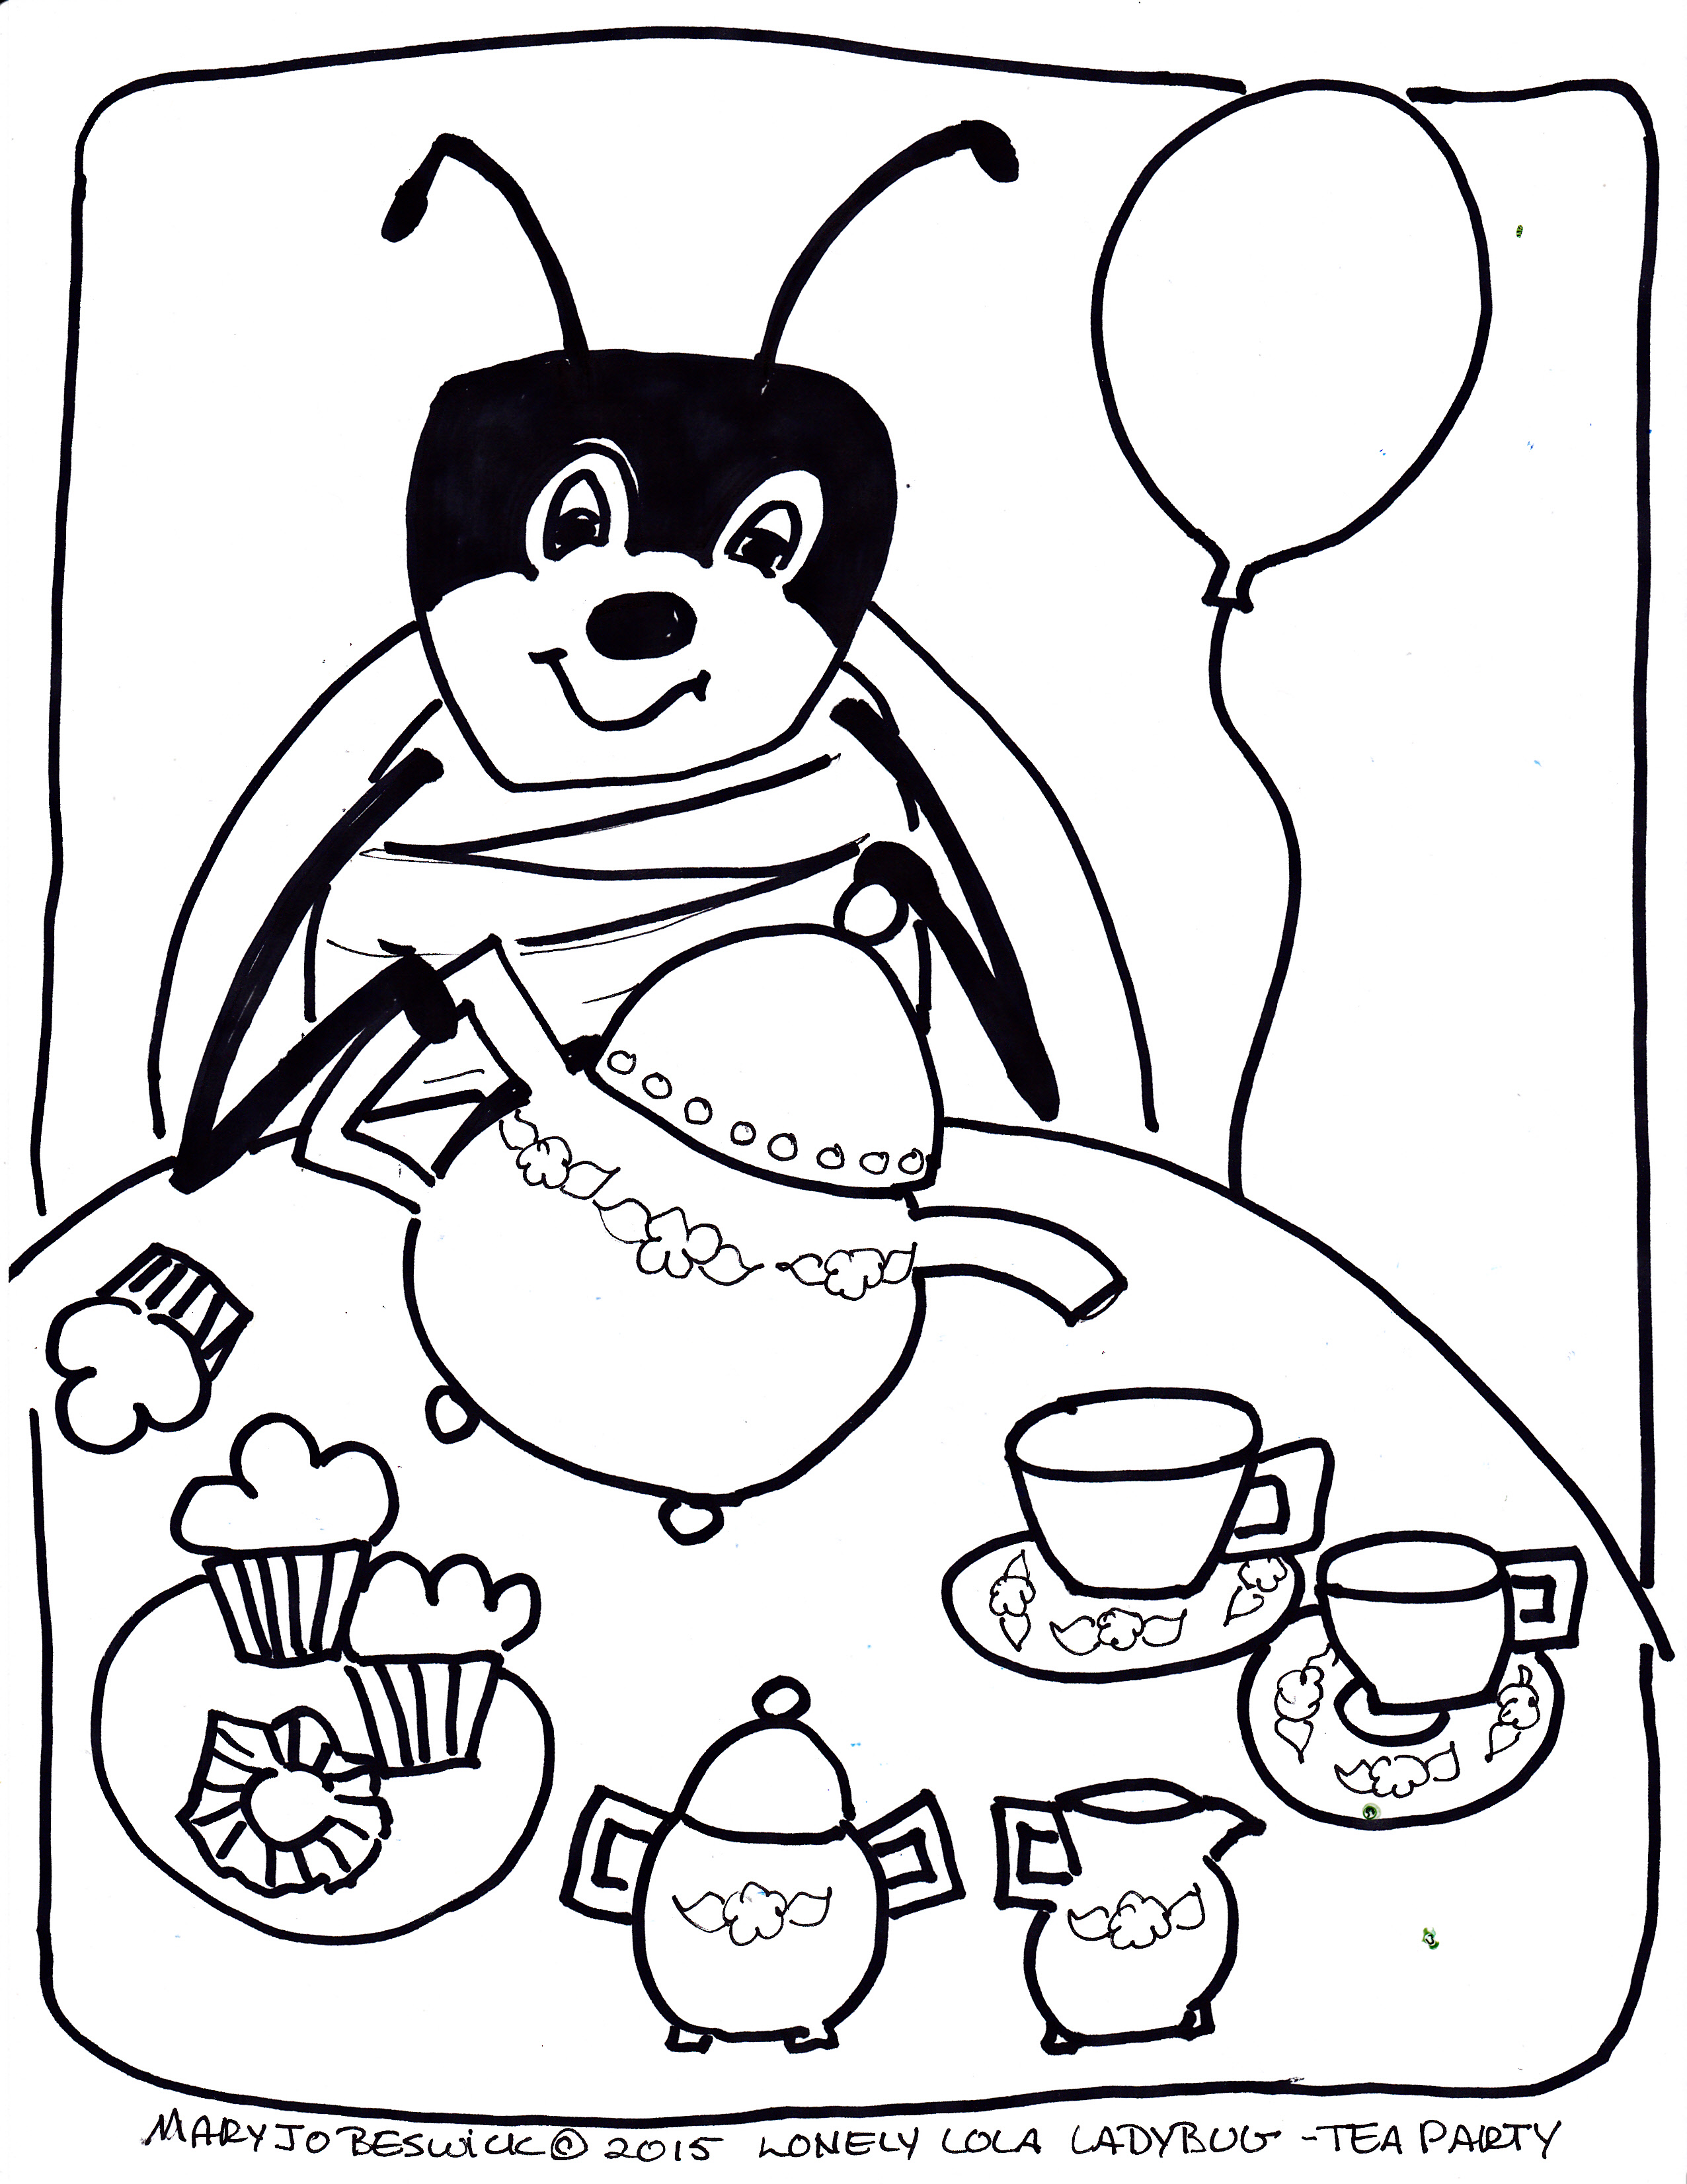 lola ladybug free coloring page tea party mary jo beswick